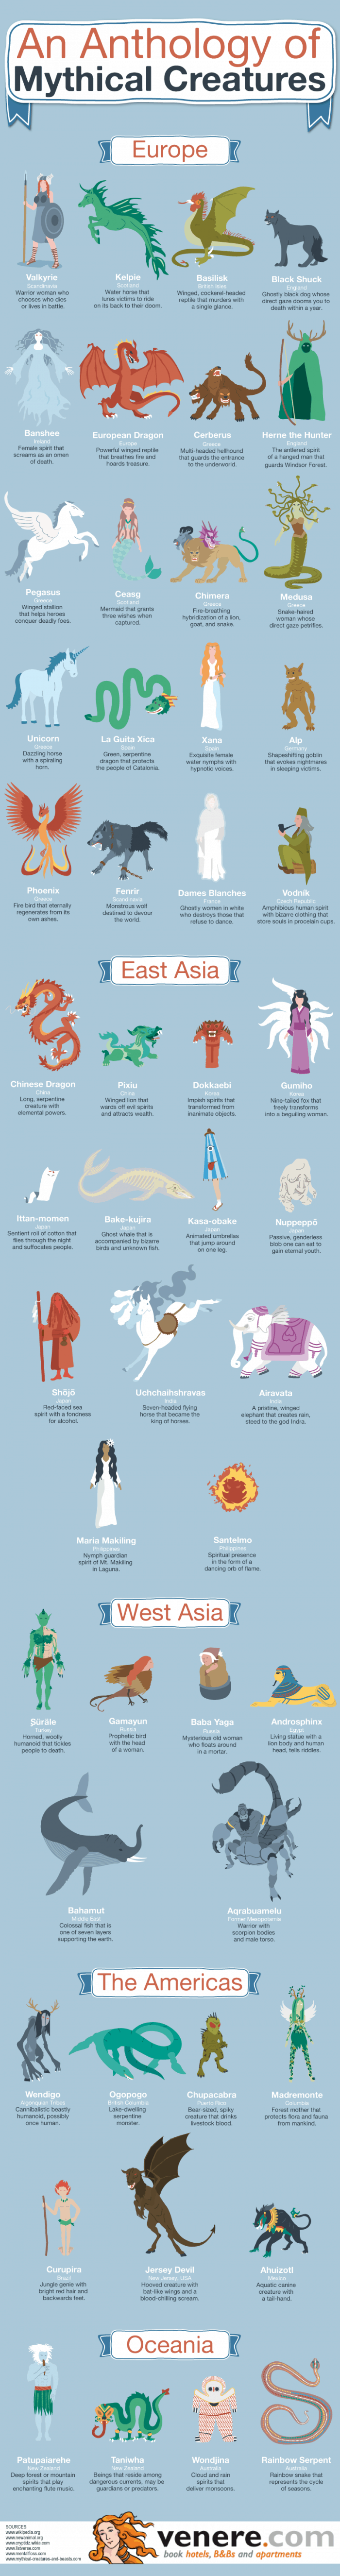 mythical creatures guide